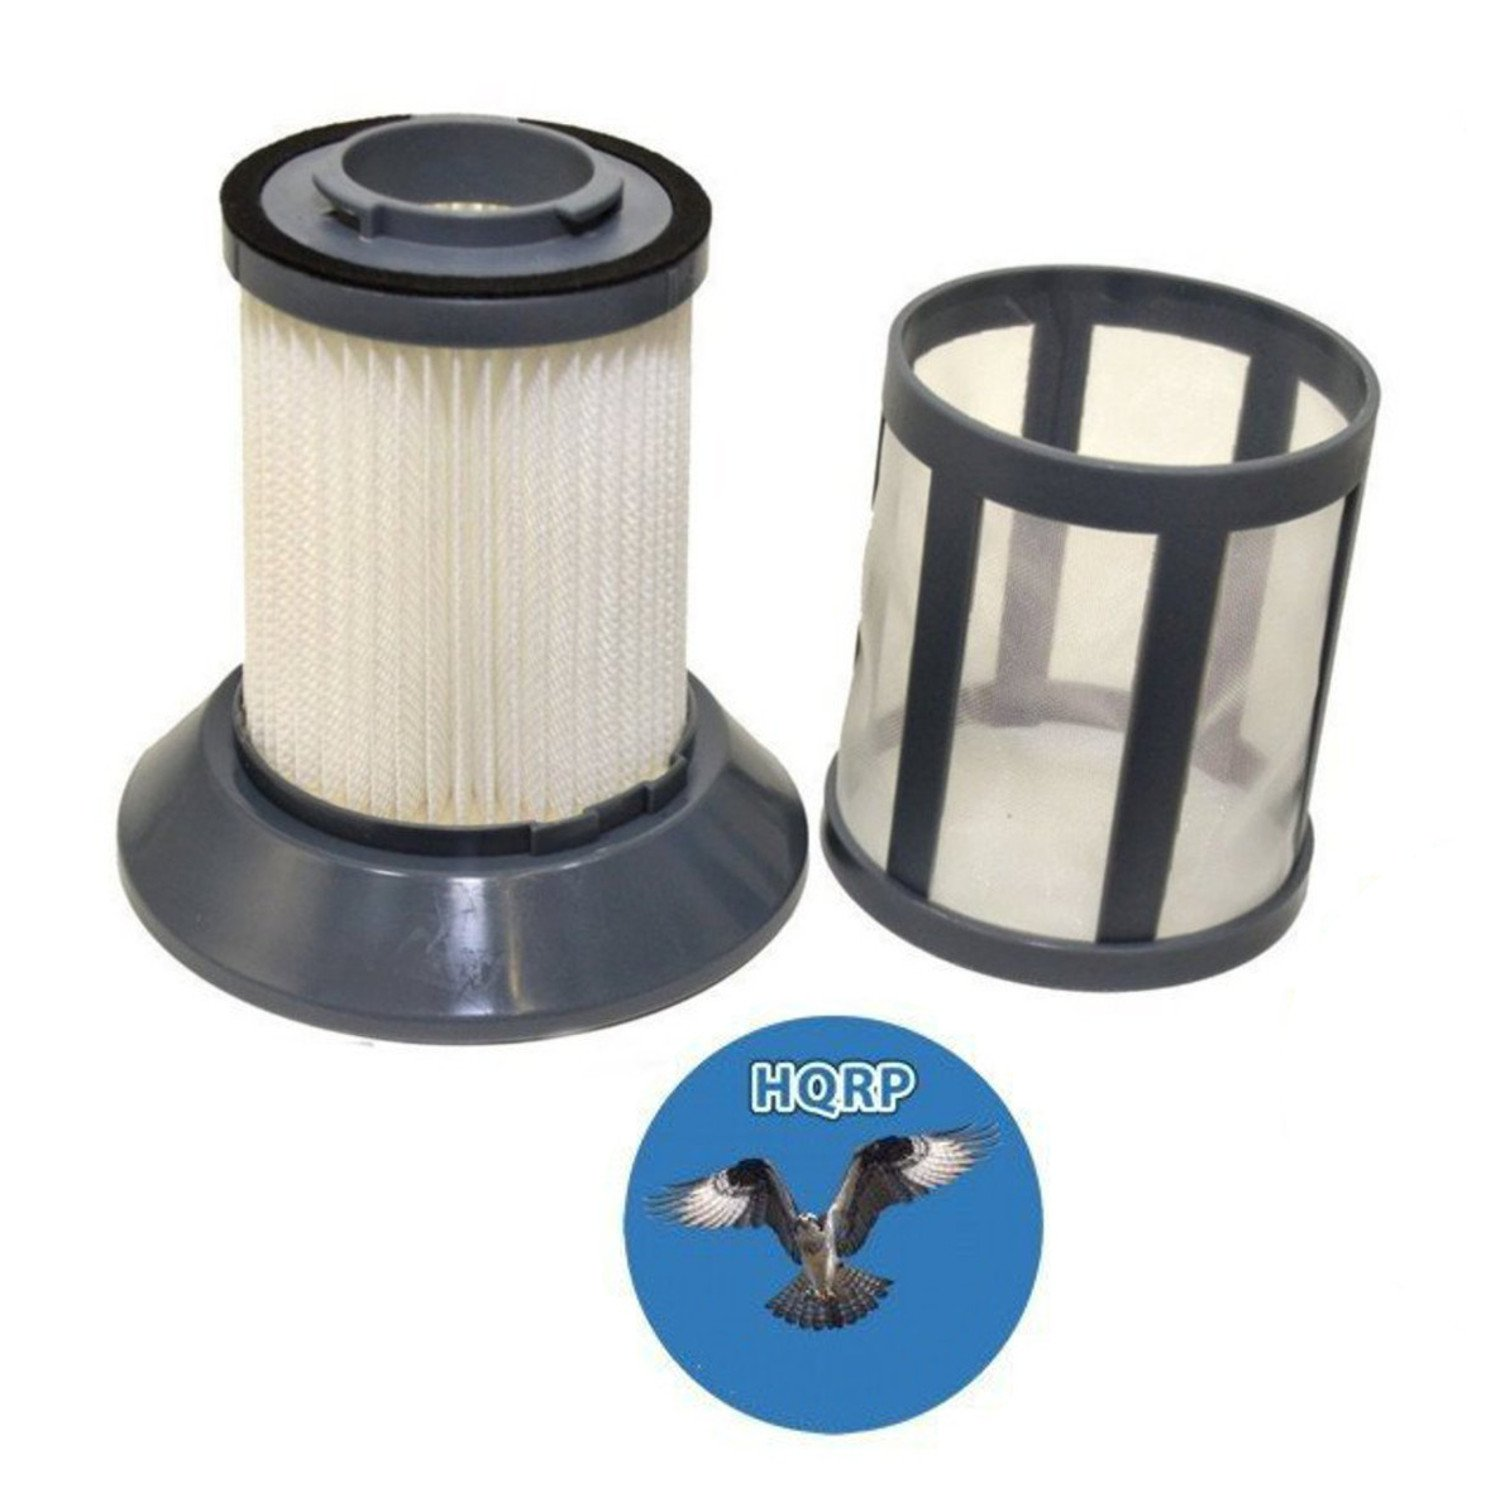 HQRP Dirt Tank Filter w/ Screen for Bissell 1608602 fits Zing 1665 16652 Bagless Canister Vacuum Cleaner plus HQRP Coaster 884667807251701